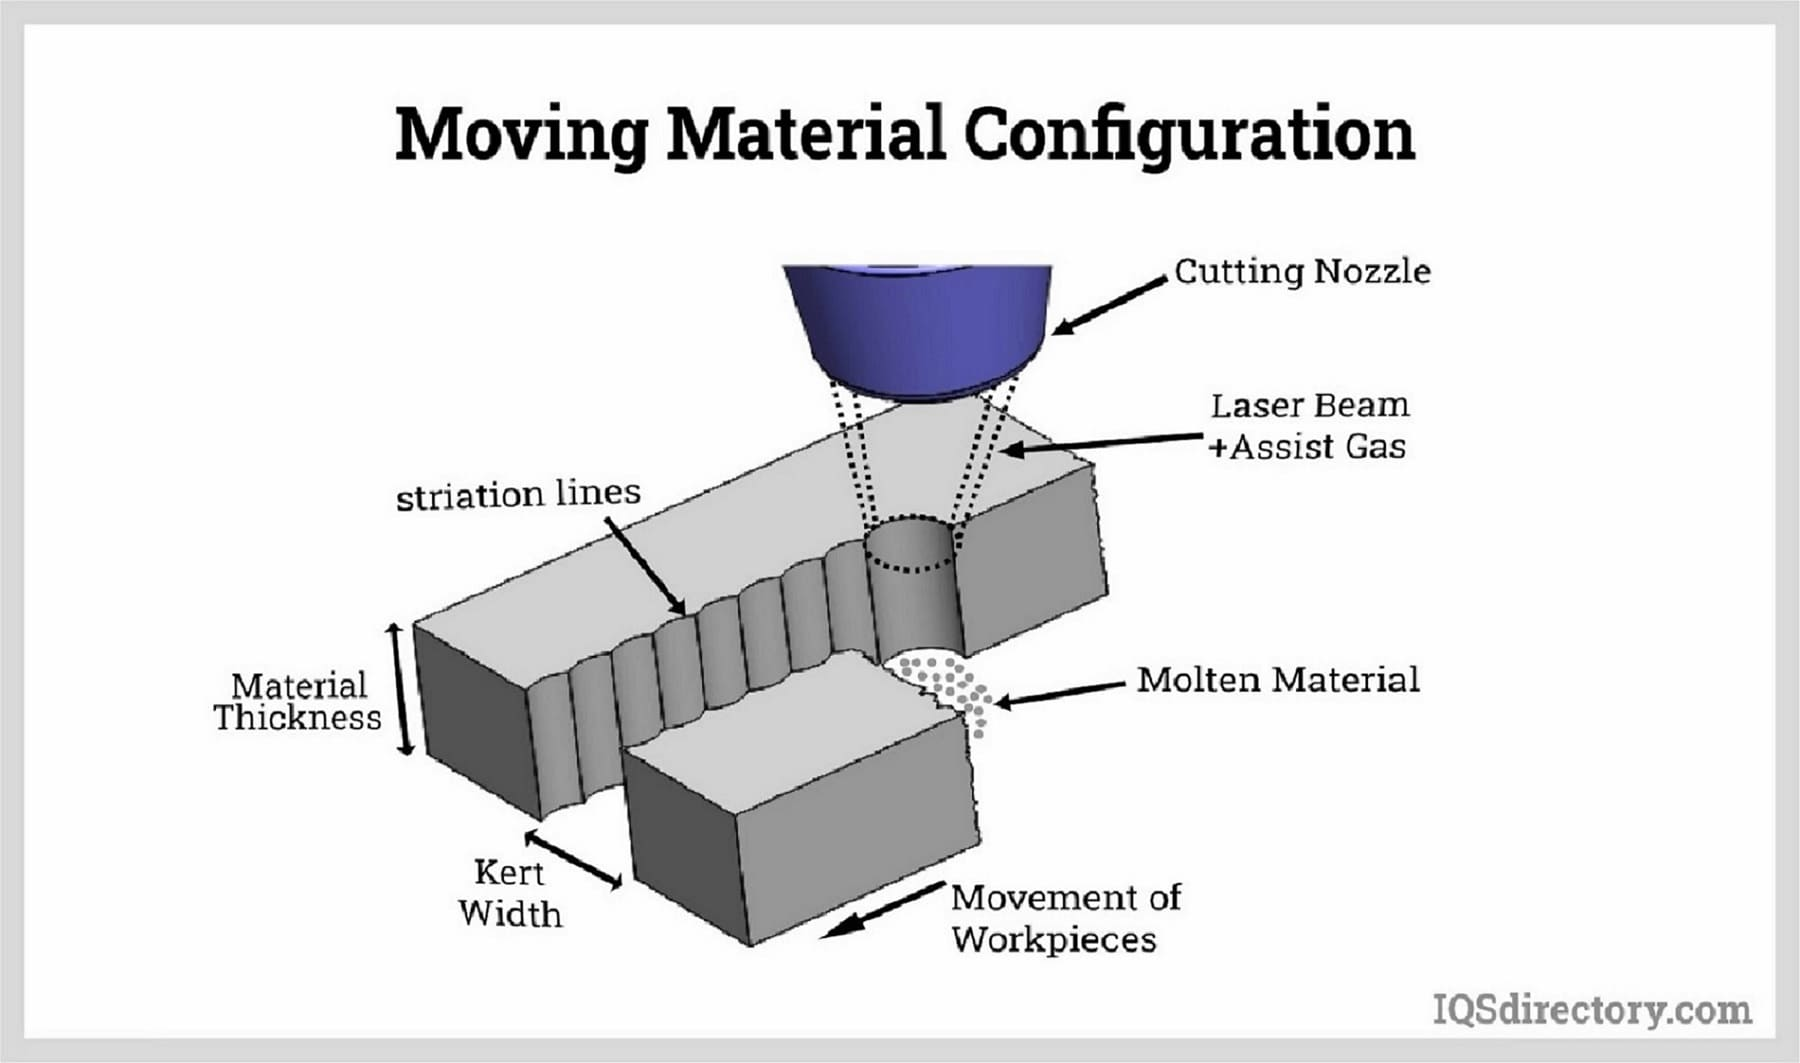 Moving Material Configuration